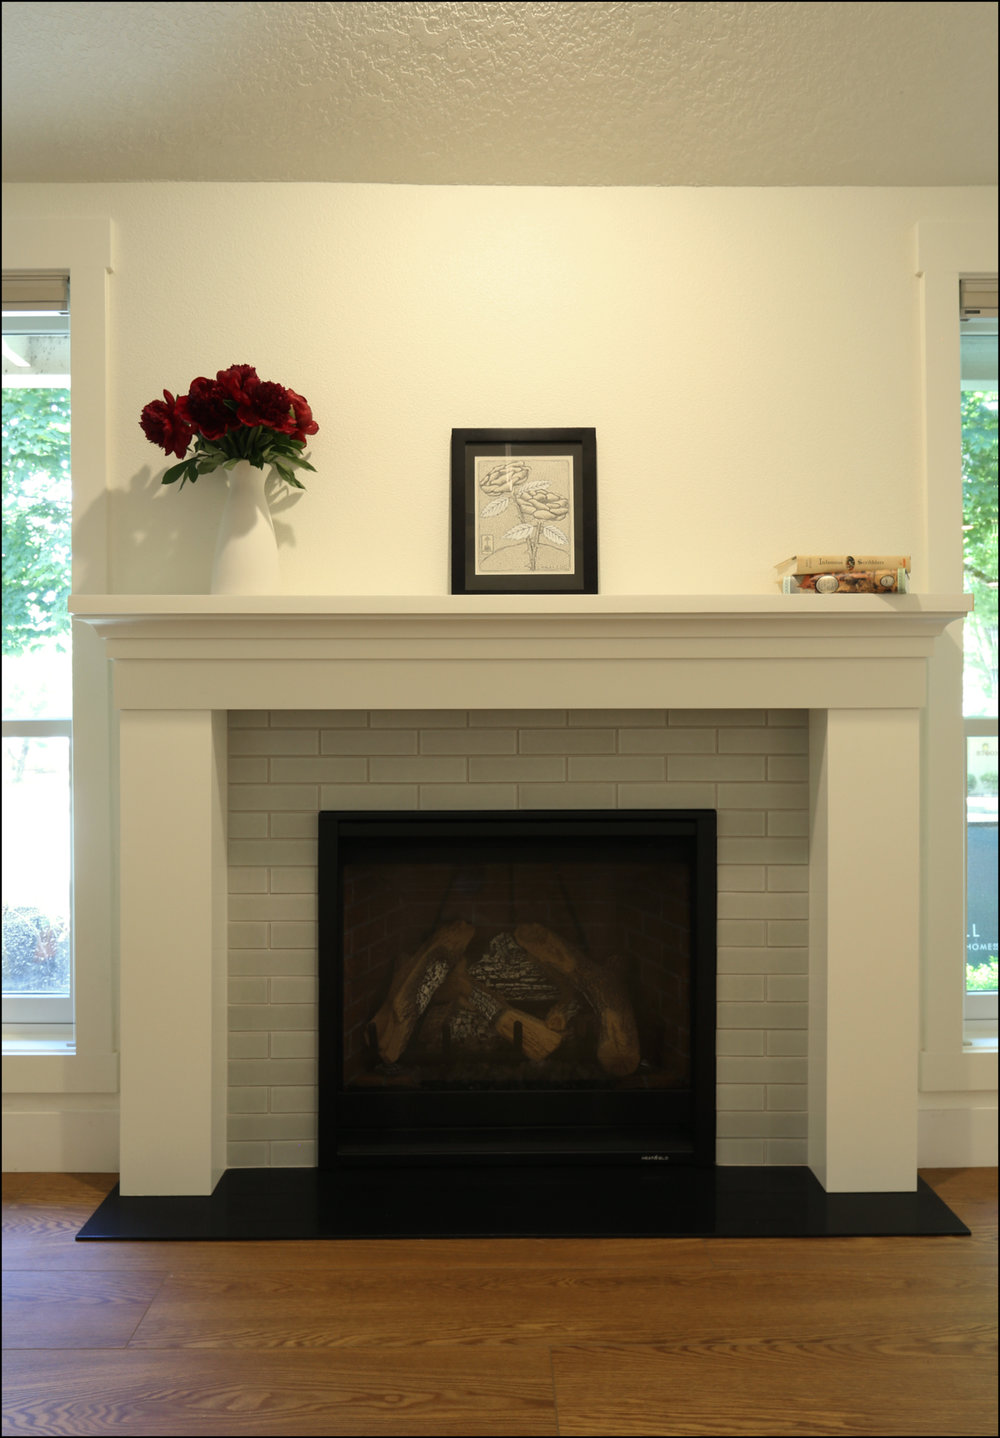 Renovated fireplace in Beaverton.